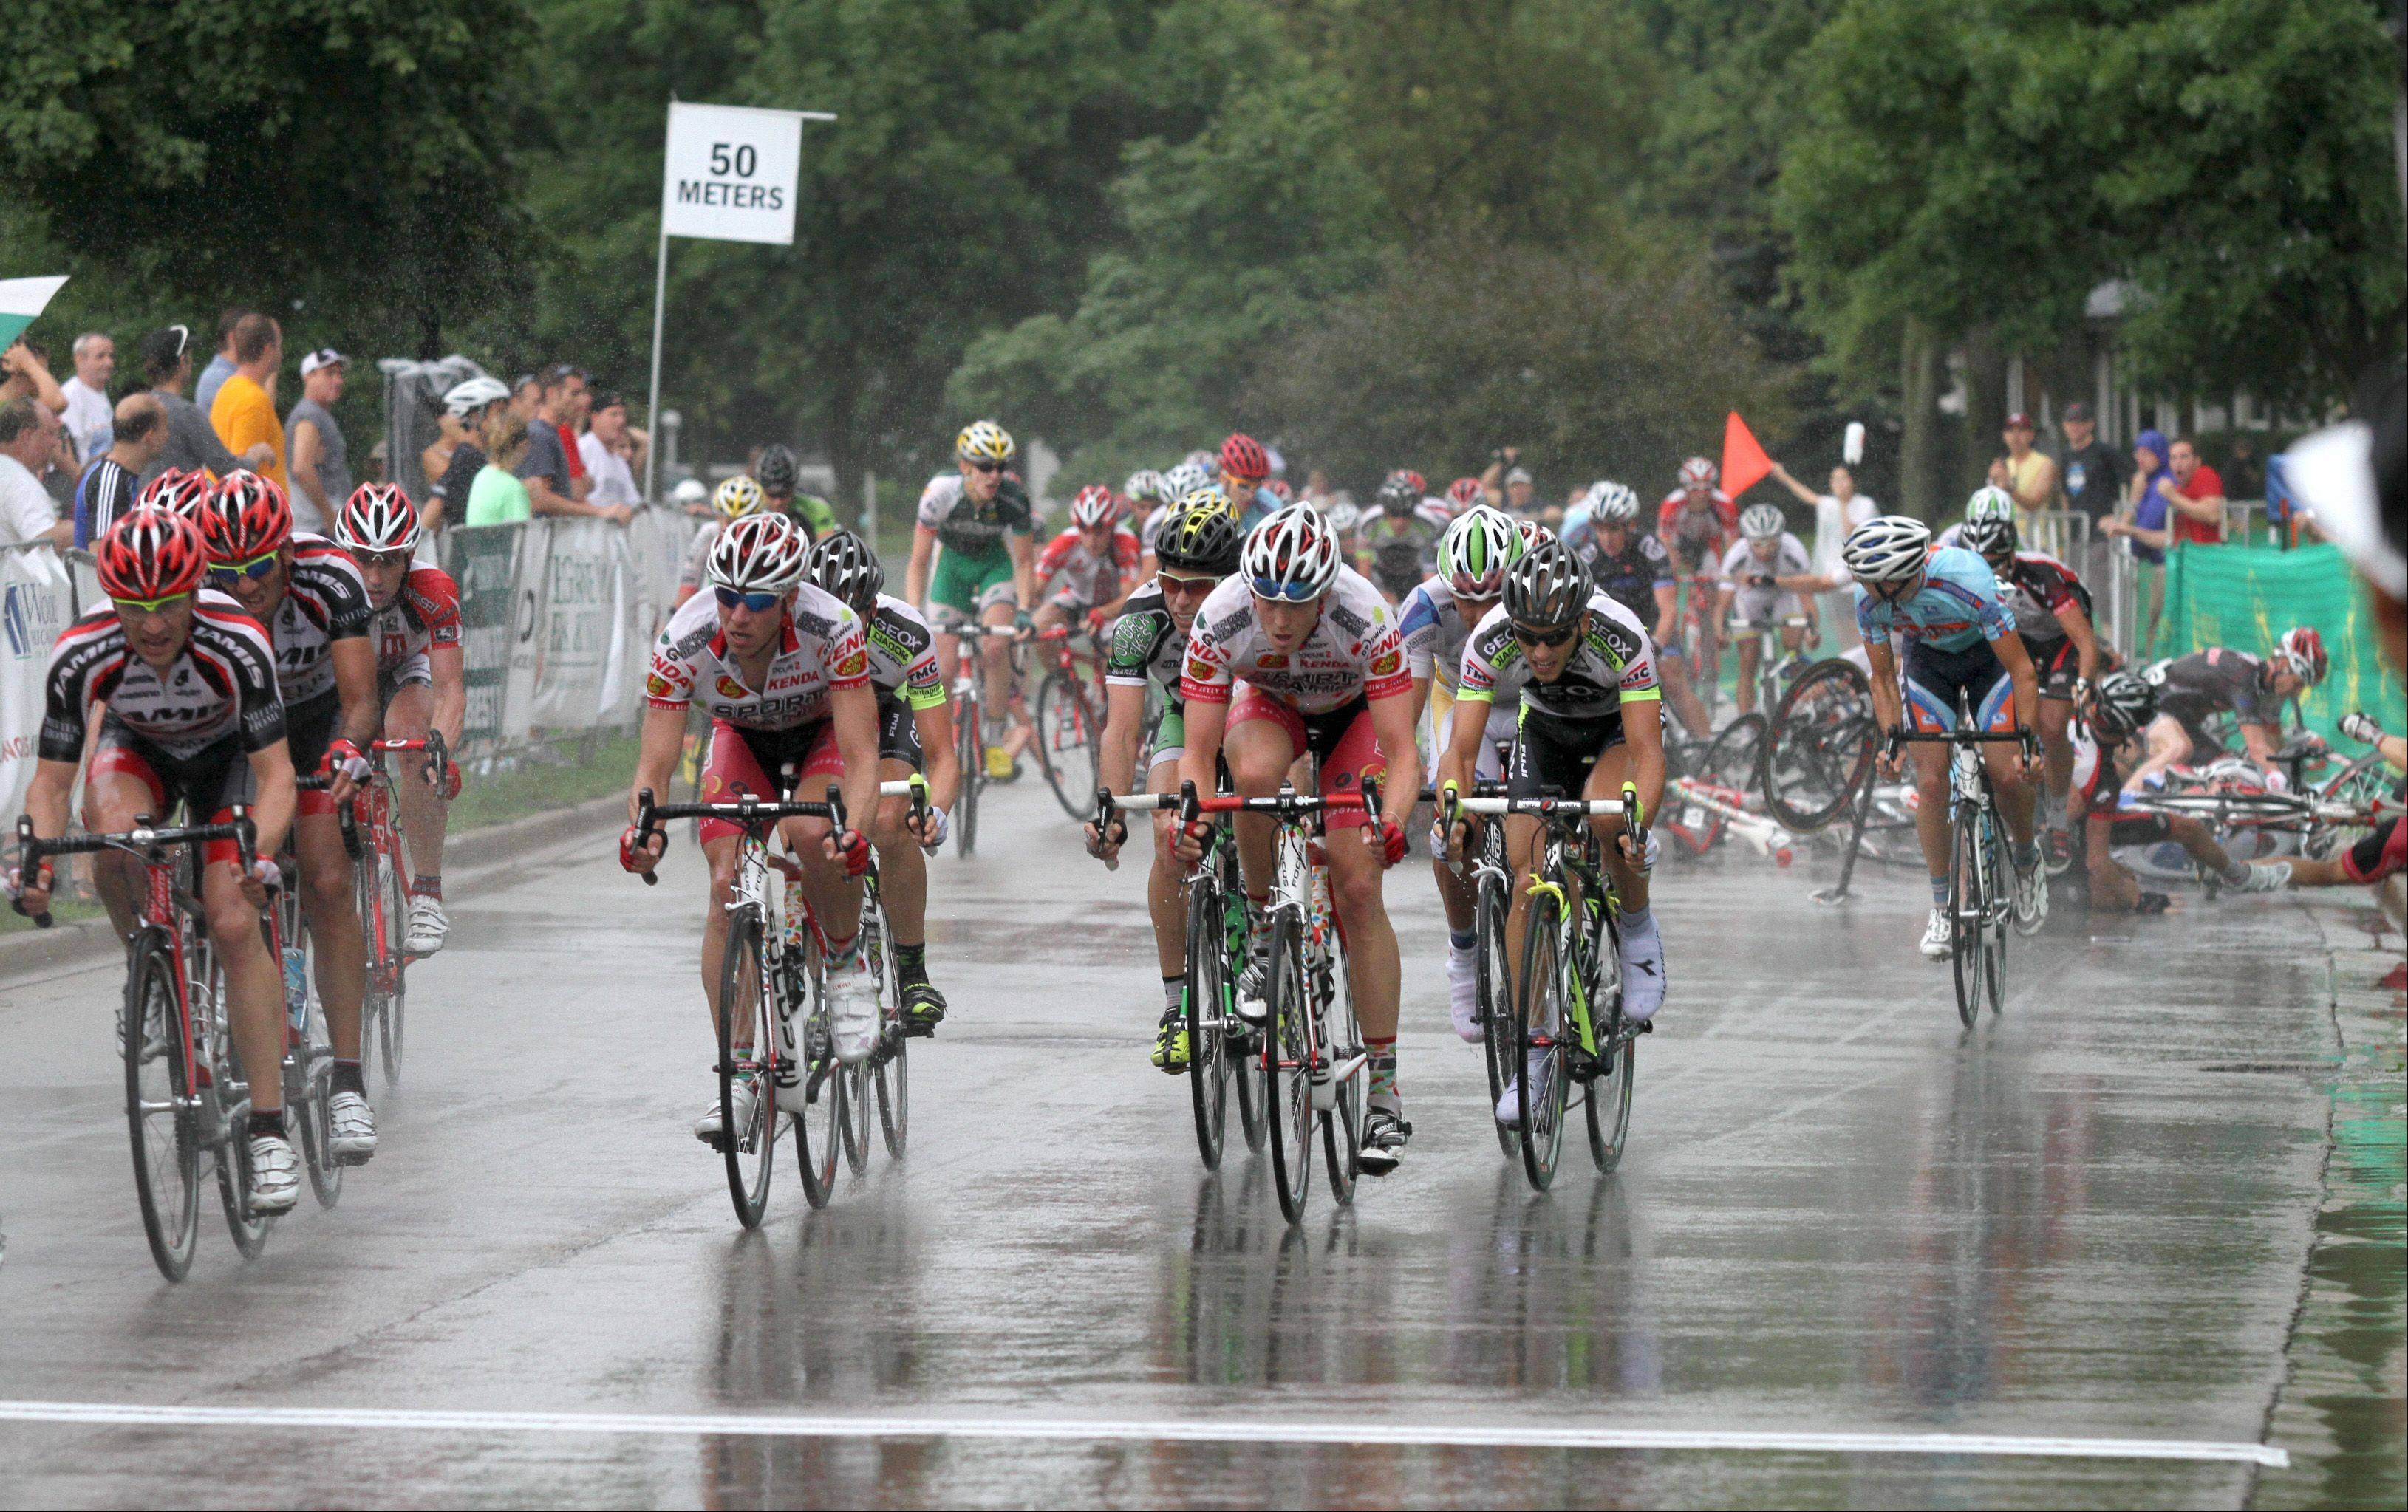 With one lap left in the men's Stage 3 race, riders crashed after a rainstorm Sunday afternoon at the sixth annual Alexian Brothers Tour of Elk Grove.